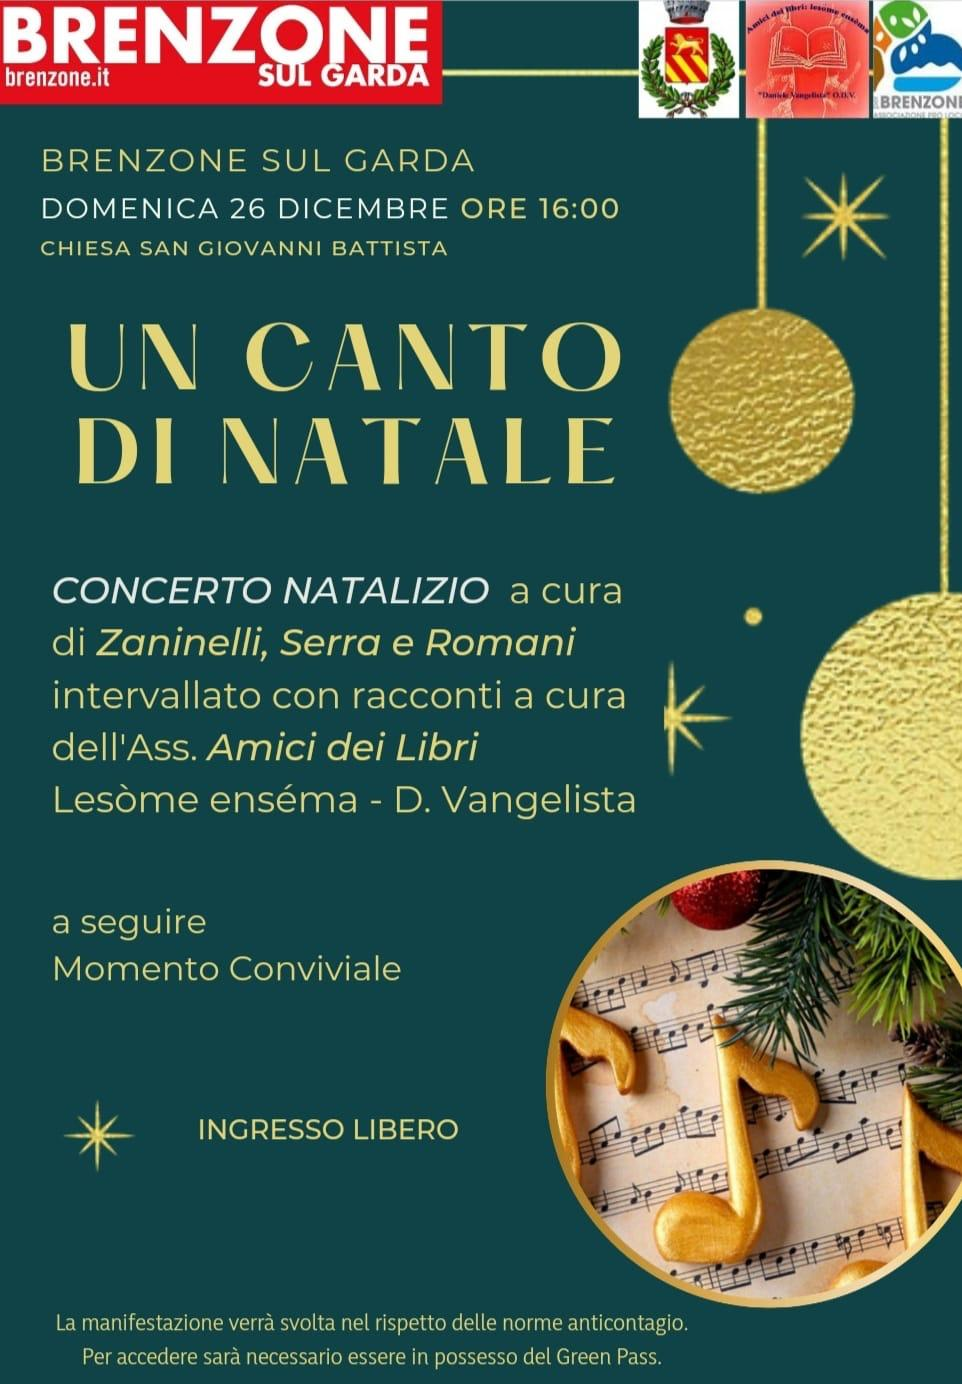 Coro: Canto di Natale - Chor: Weihnachtslied - Chorus: Christmas carol